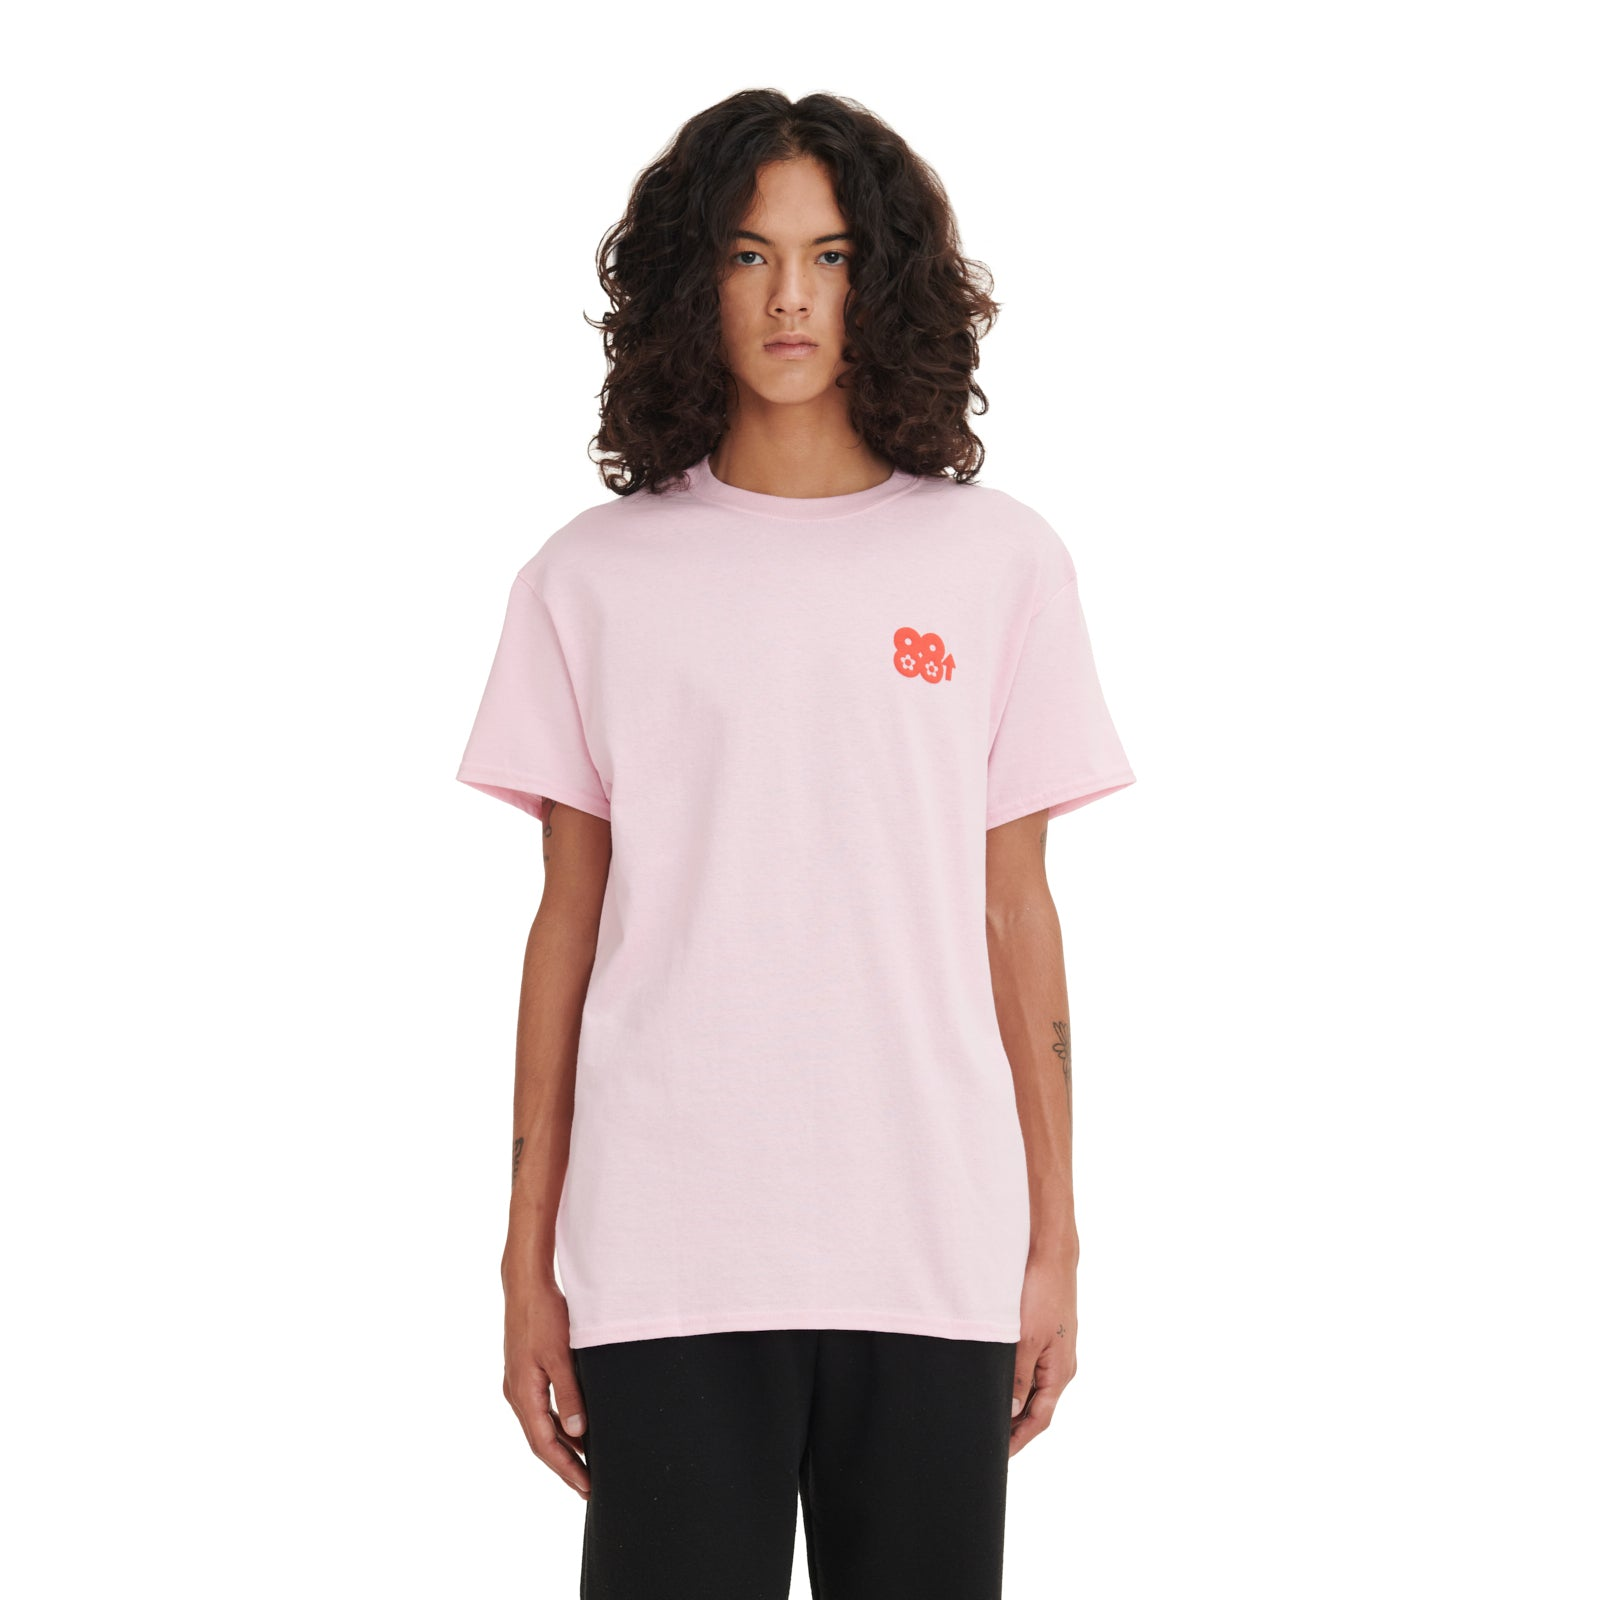 88Rising x Vandy Lucky Cat T-Shirt Pink